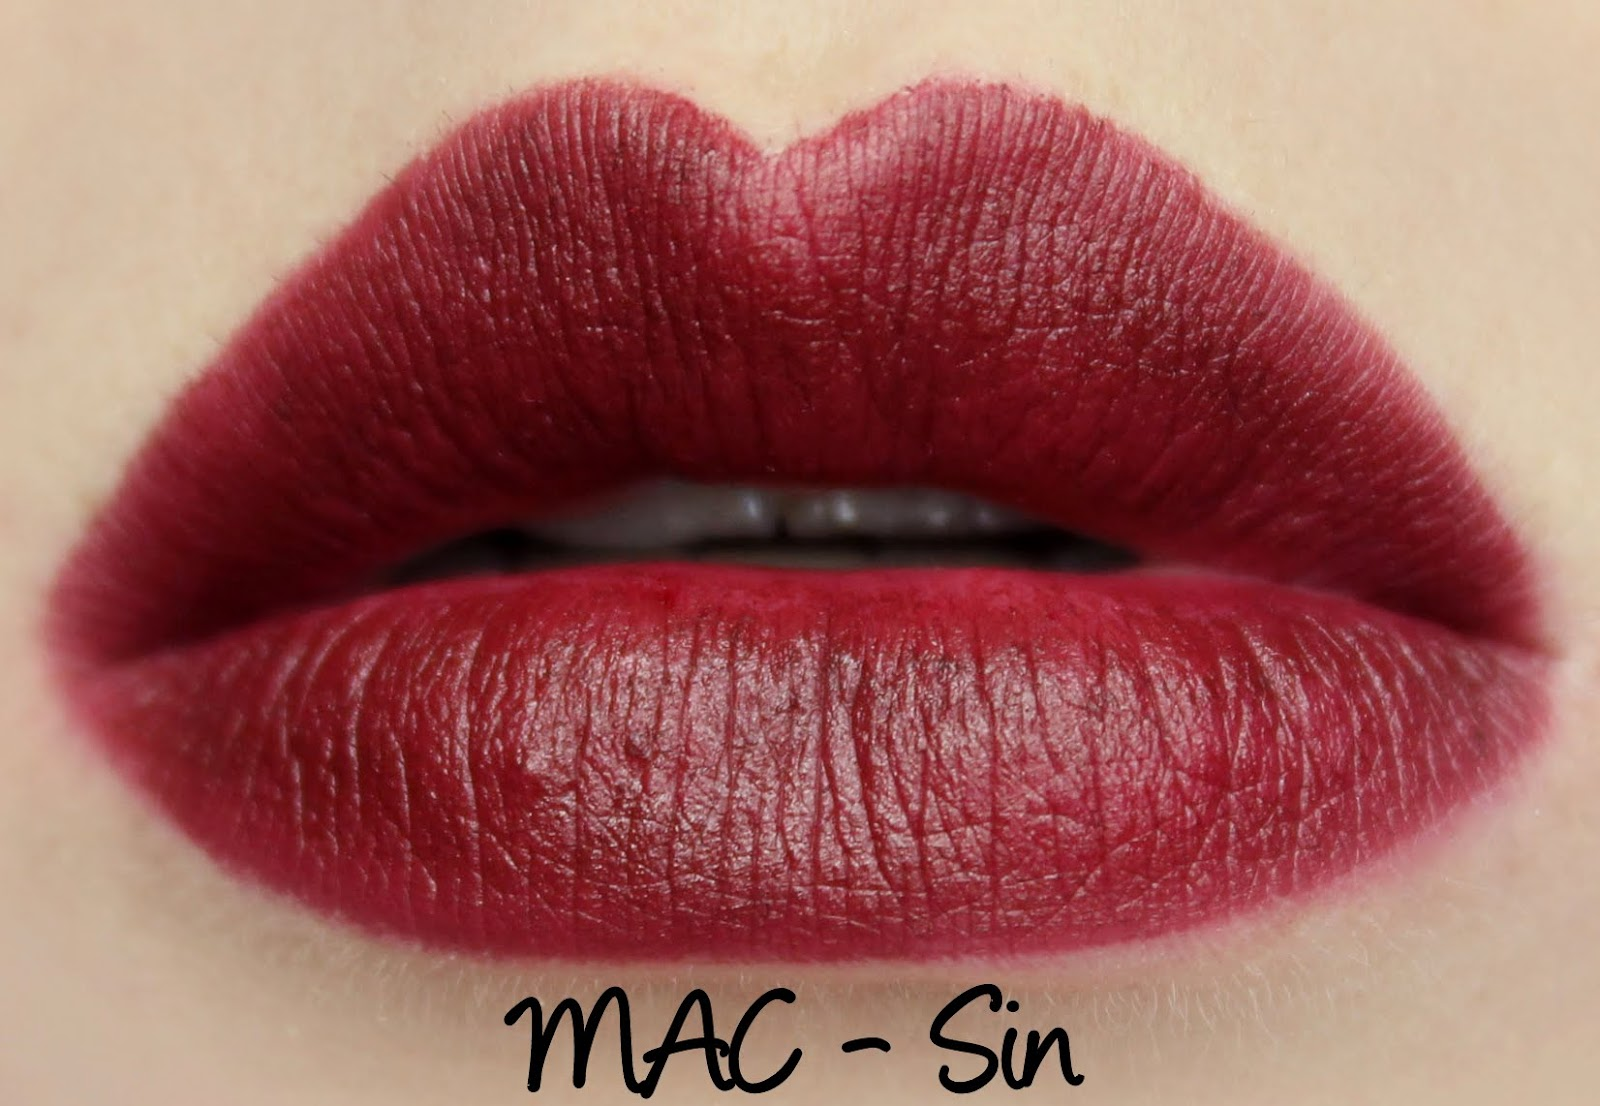 Preferenza MAC Toledo - Oxblood Lipglass and Sin Lipstick Swatches & Review  TR79